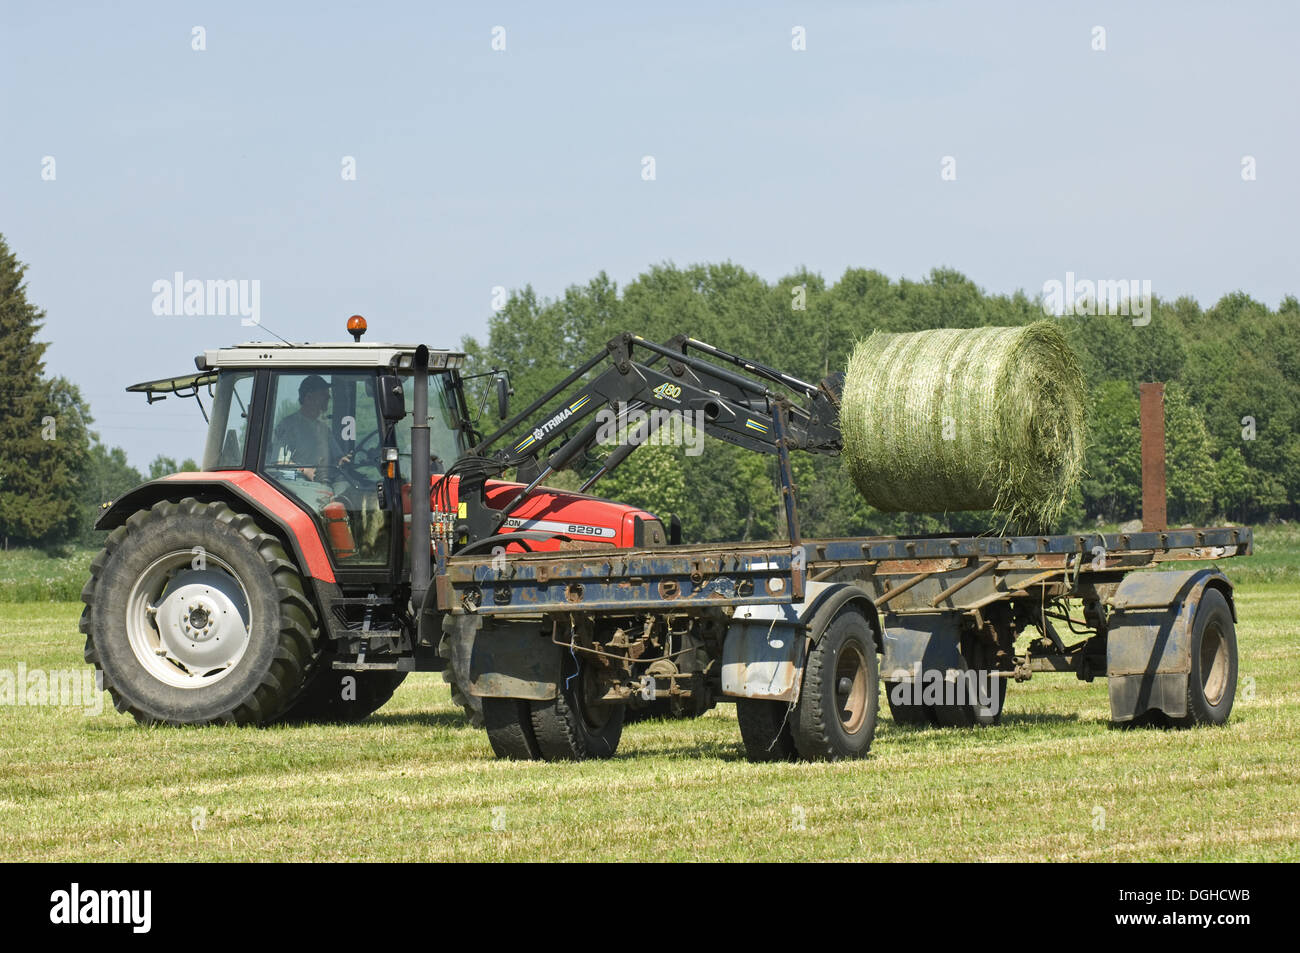 runde silageballen anh nger verladen von massey ferguson. Black Bedroom Furniture Sets. Home Design Ideas